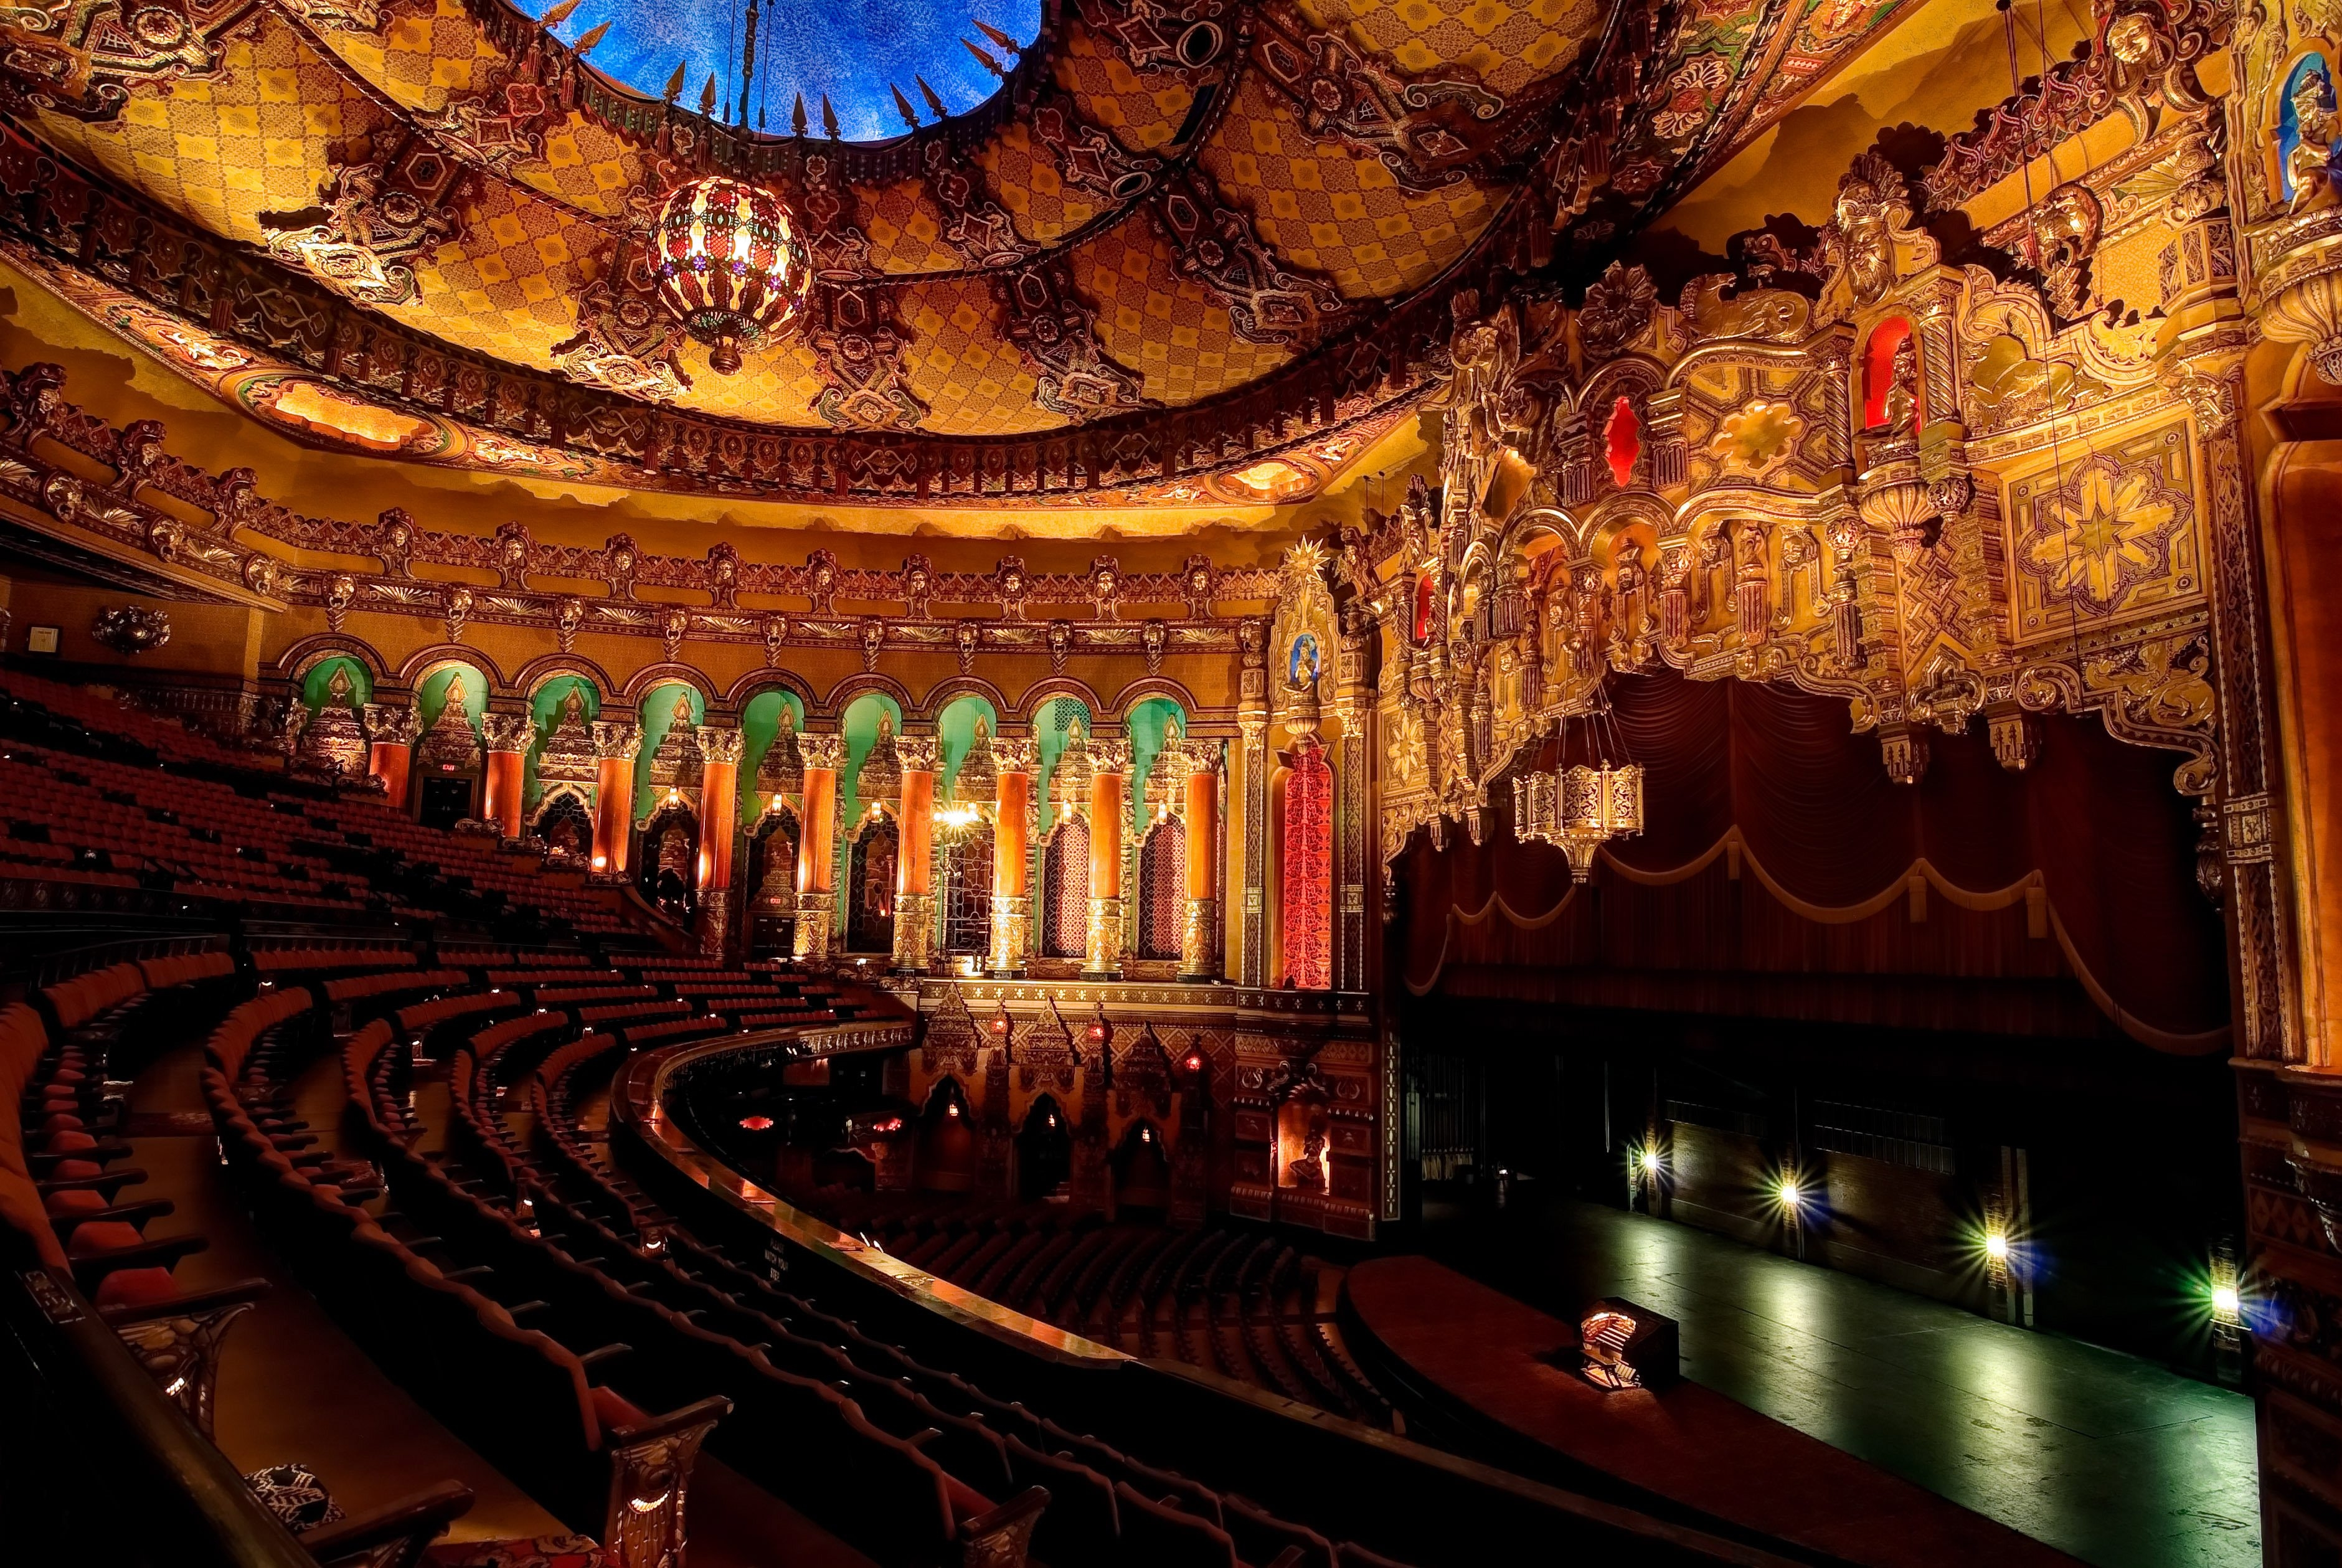 Amid its opulent decor, the refurbished Detroit Fox Theatre boasts more than 5,000 seats, a six-story grand lobby, a chandelier of colored glass and decorative columns.